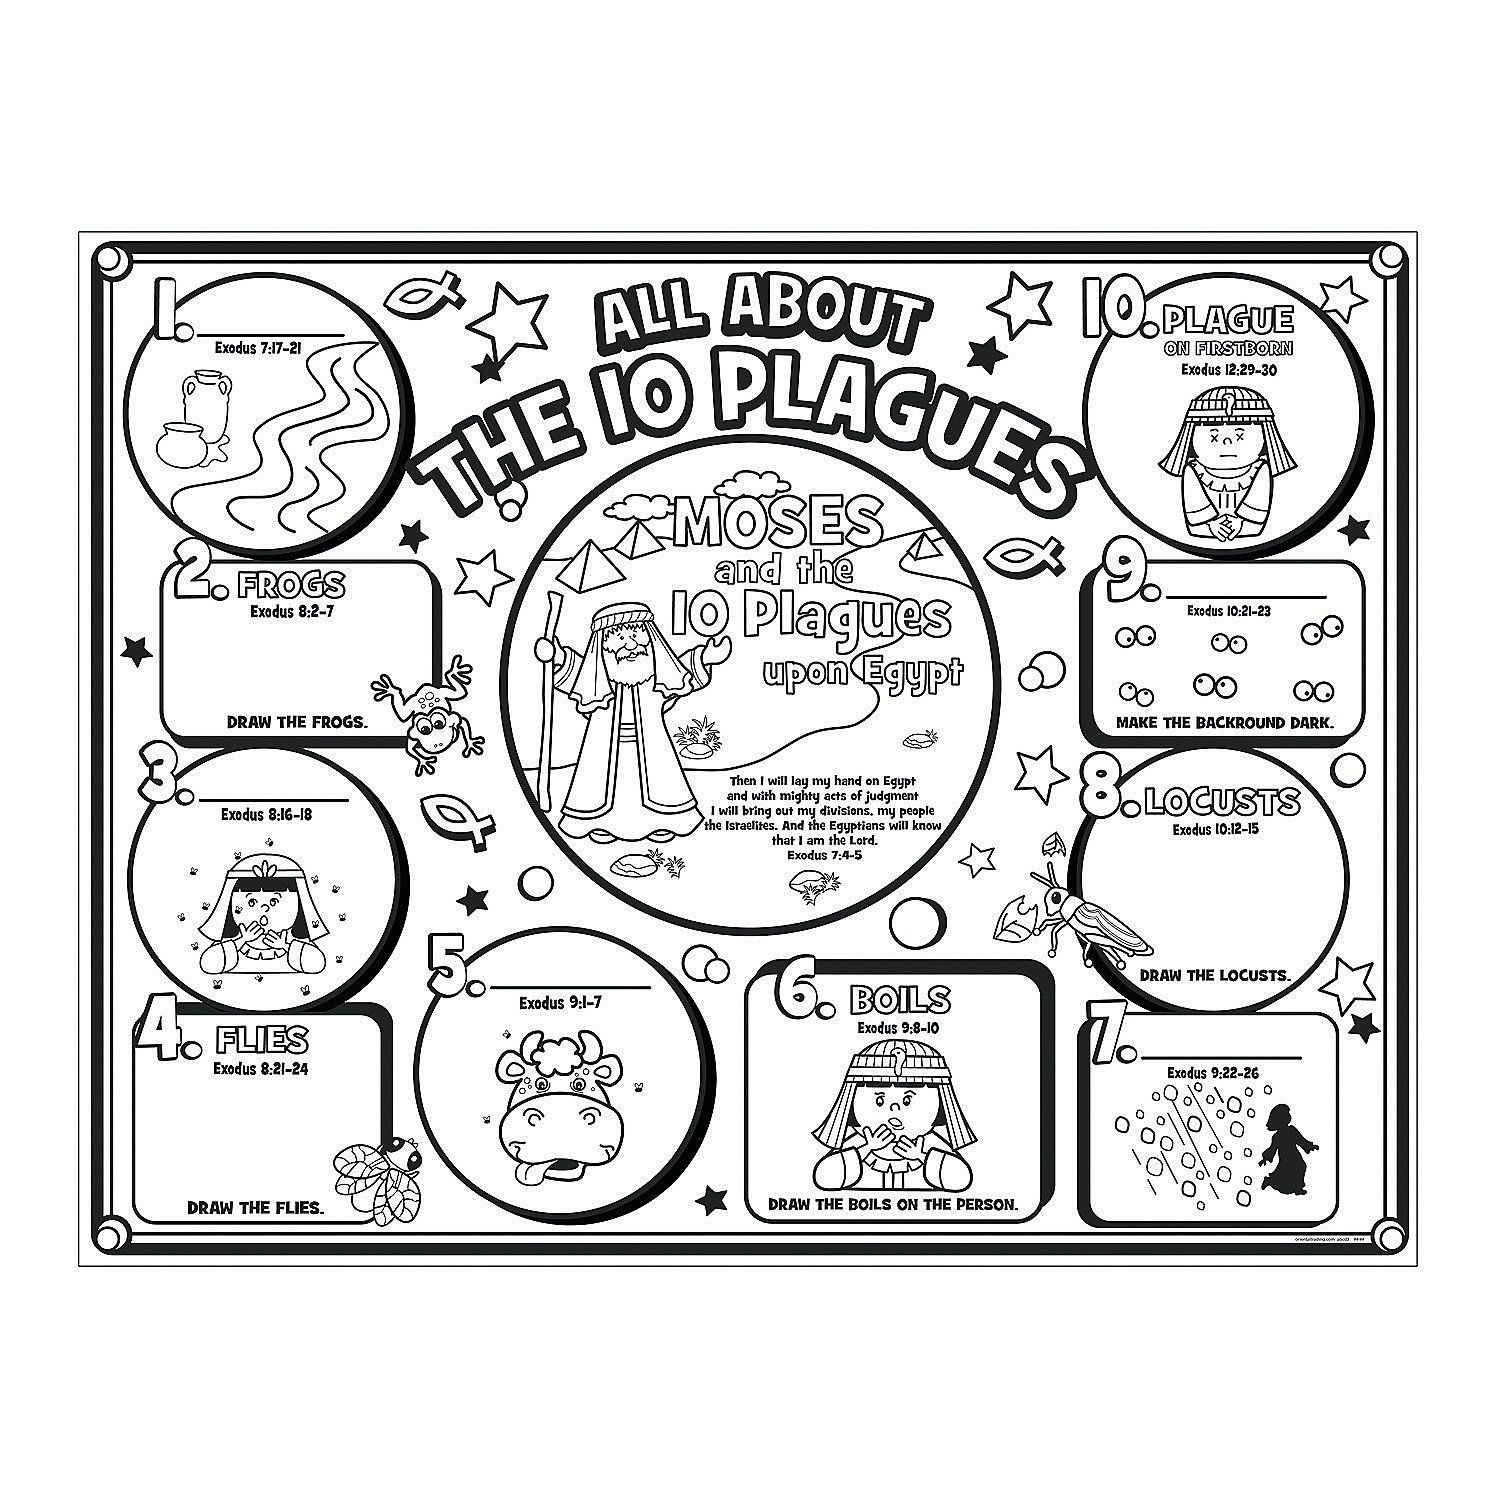 10 Commandments Coloring Pages | Free download on ClipArtMag